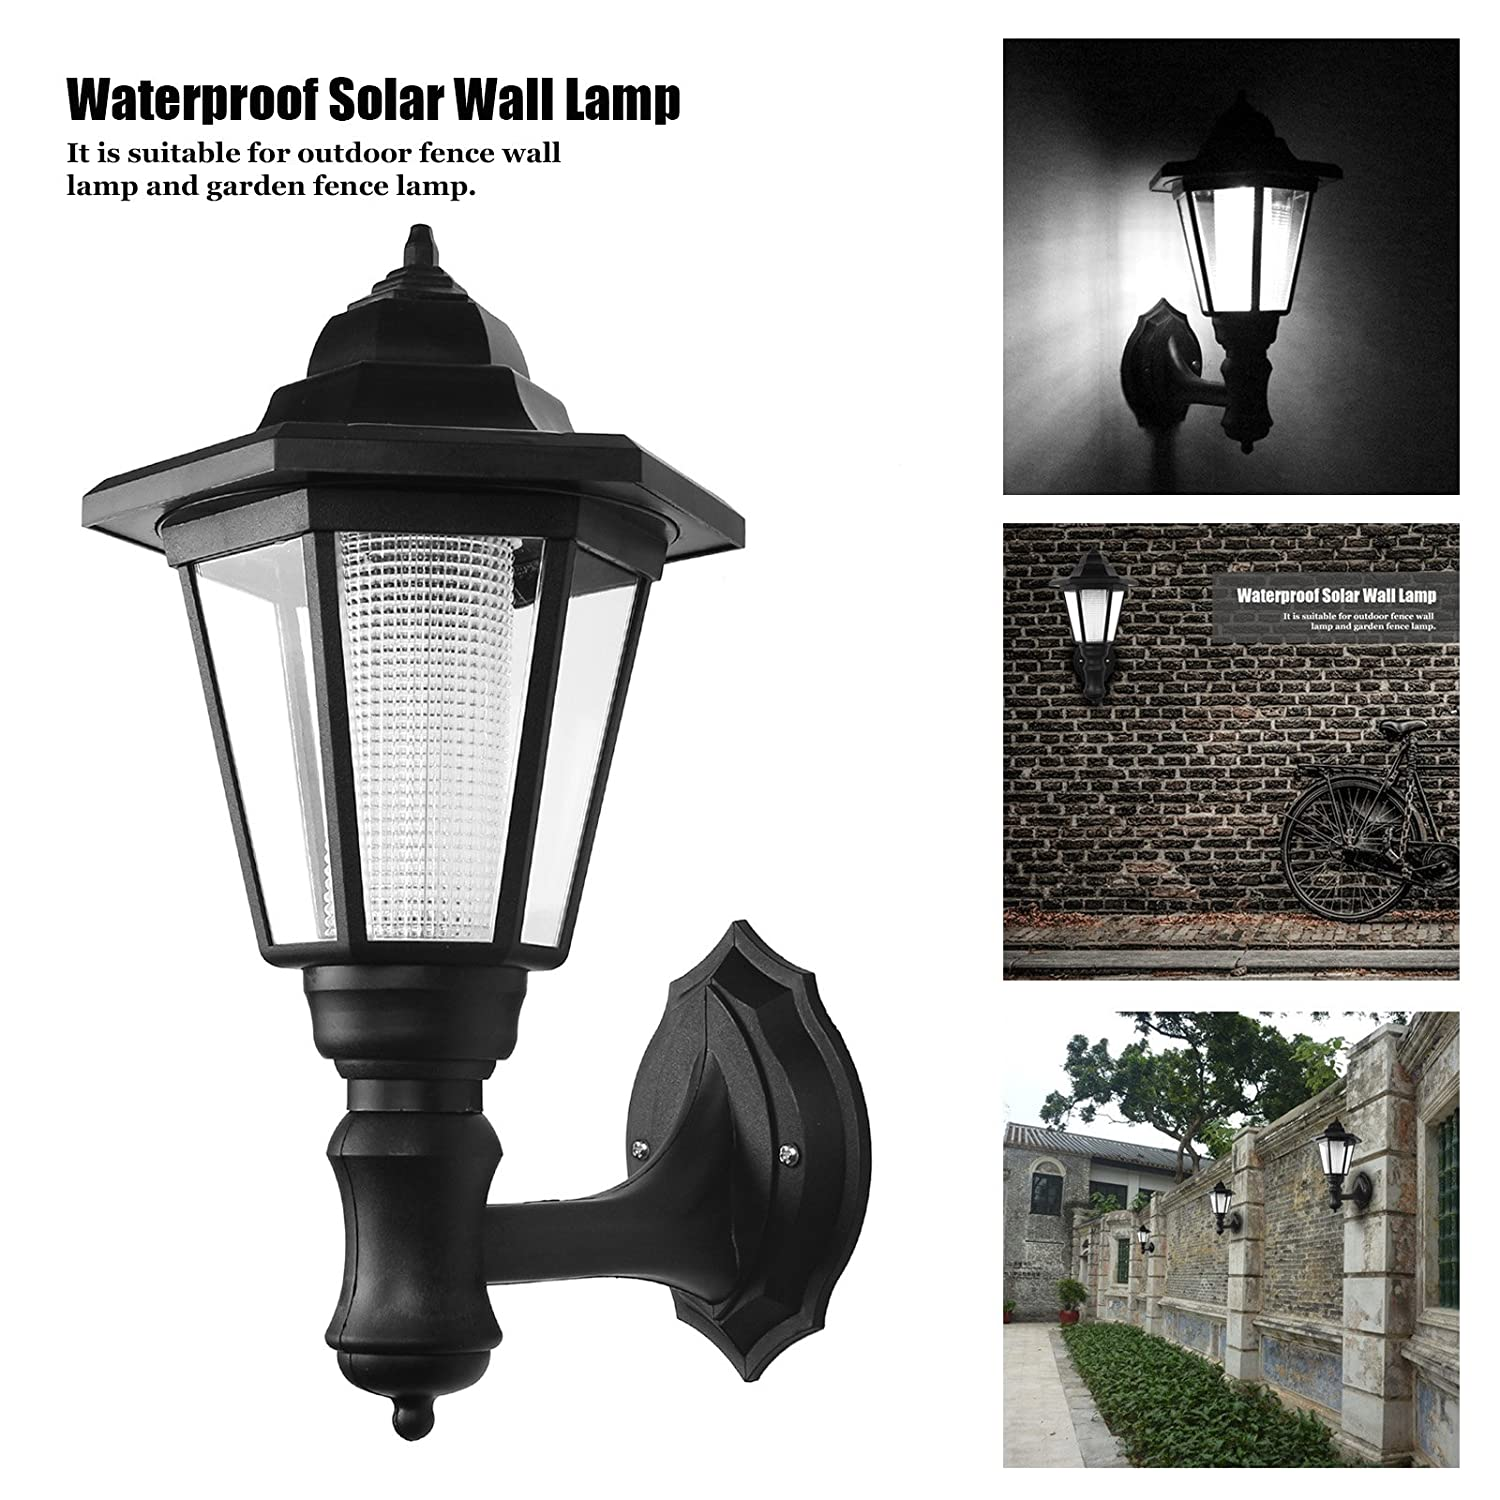 Powstro solar powered wall lantern light lamp outdoor garden powstro solar powered wall lantern light lamp outdoor garden weatherproof led wall lamp hexagonal light lamp exterior sconce lantern lamp for outdoor aloadofball Image collections